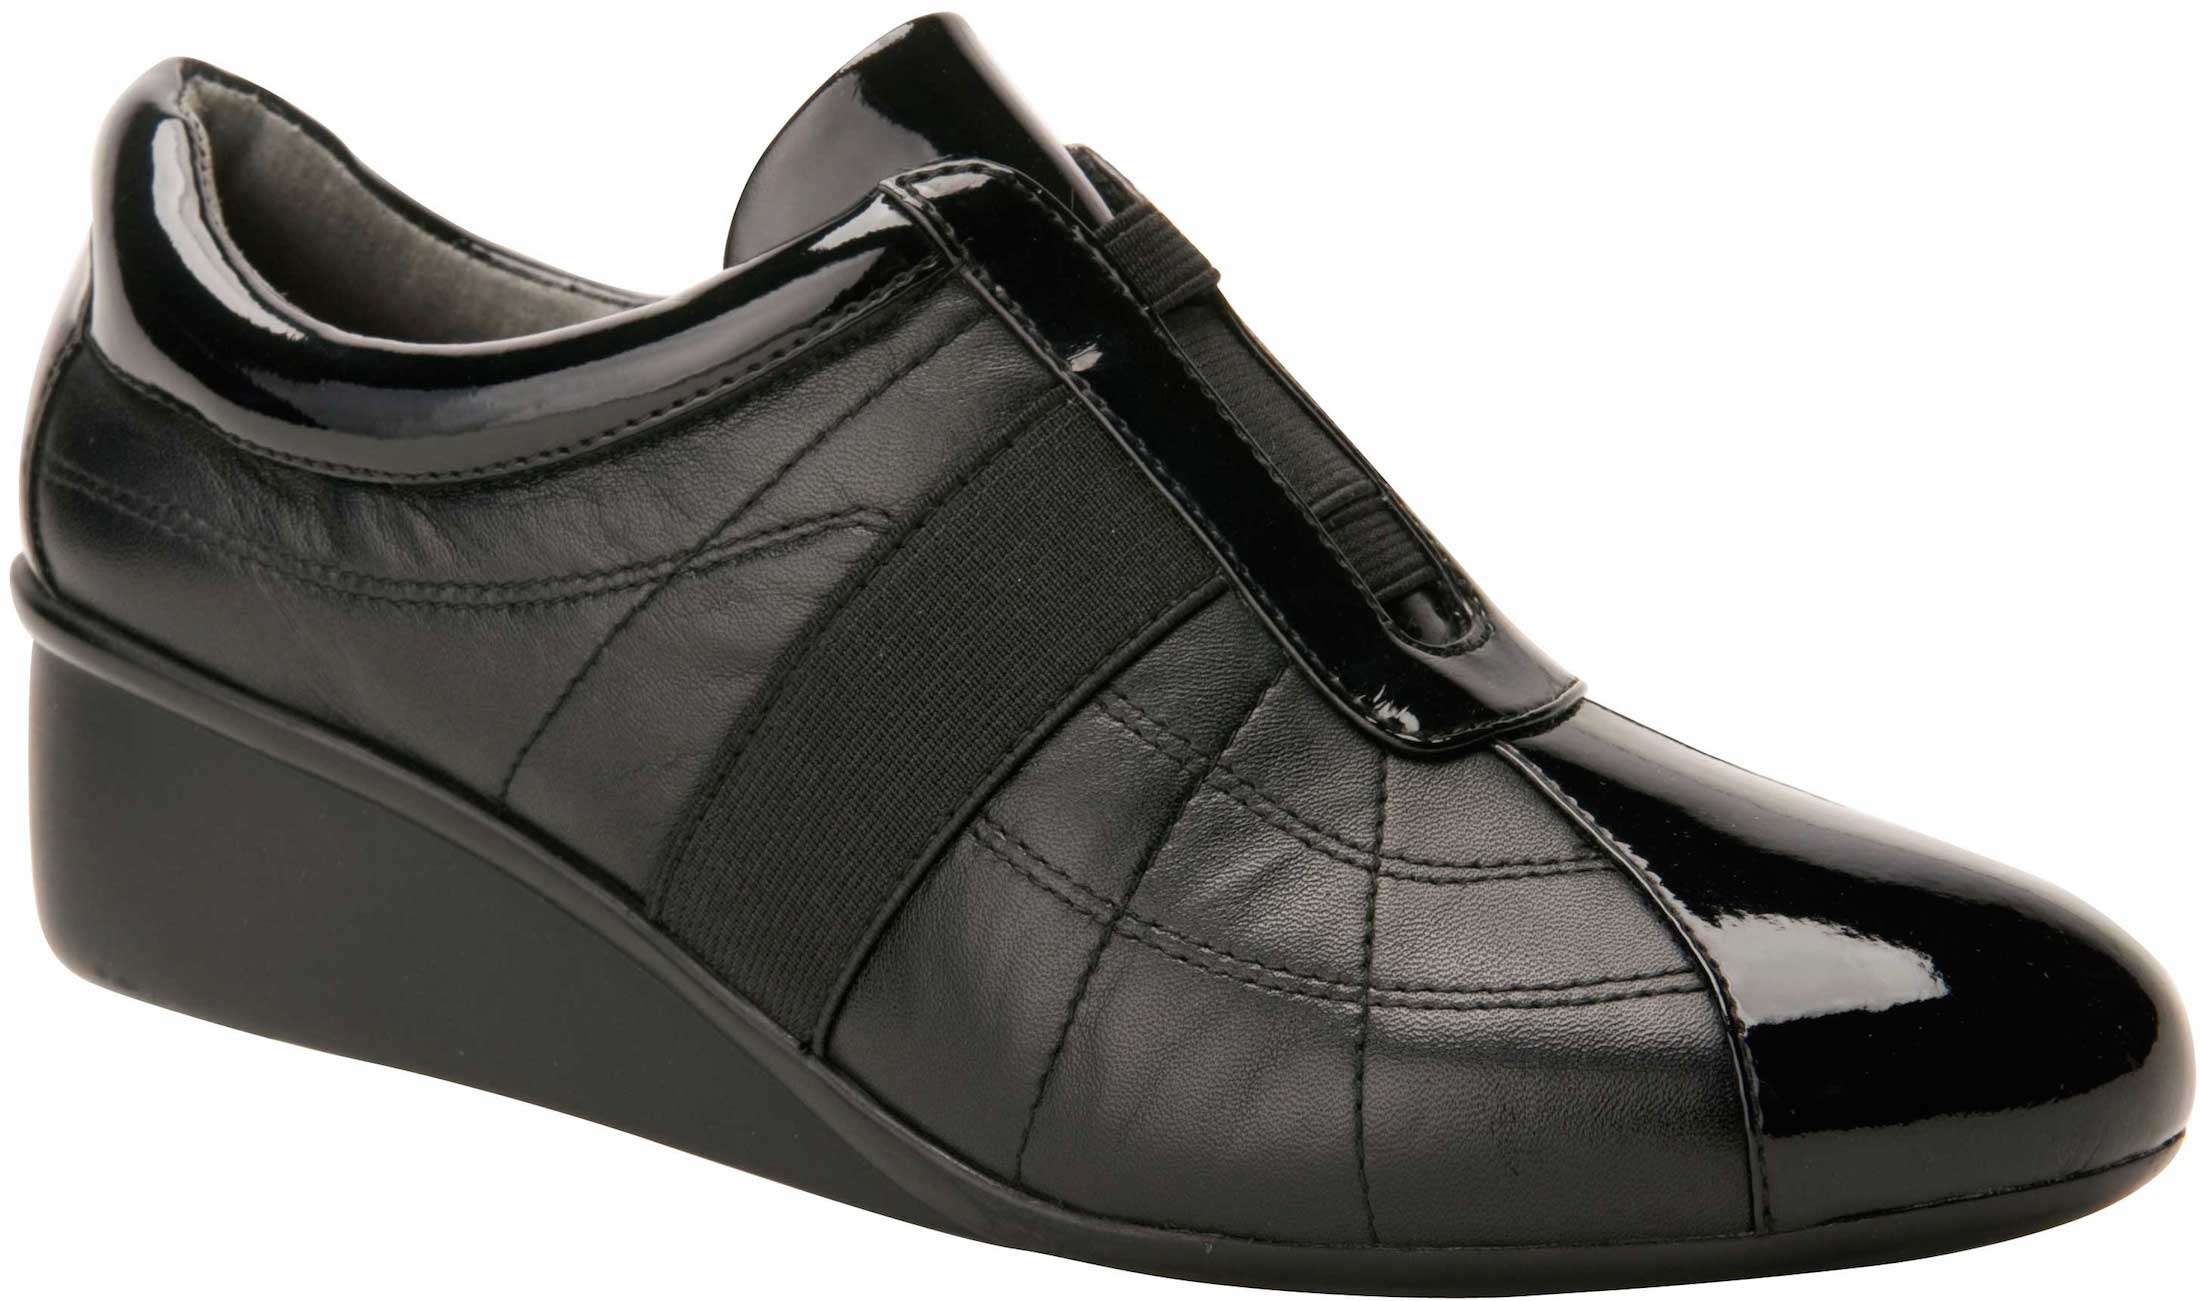 the ros hommerson slip on casual comfort shoe